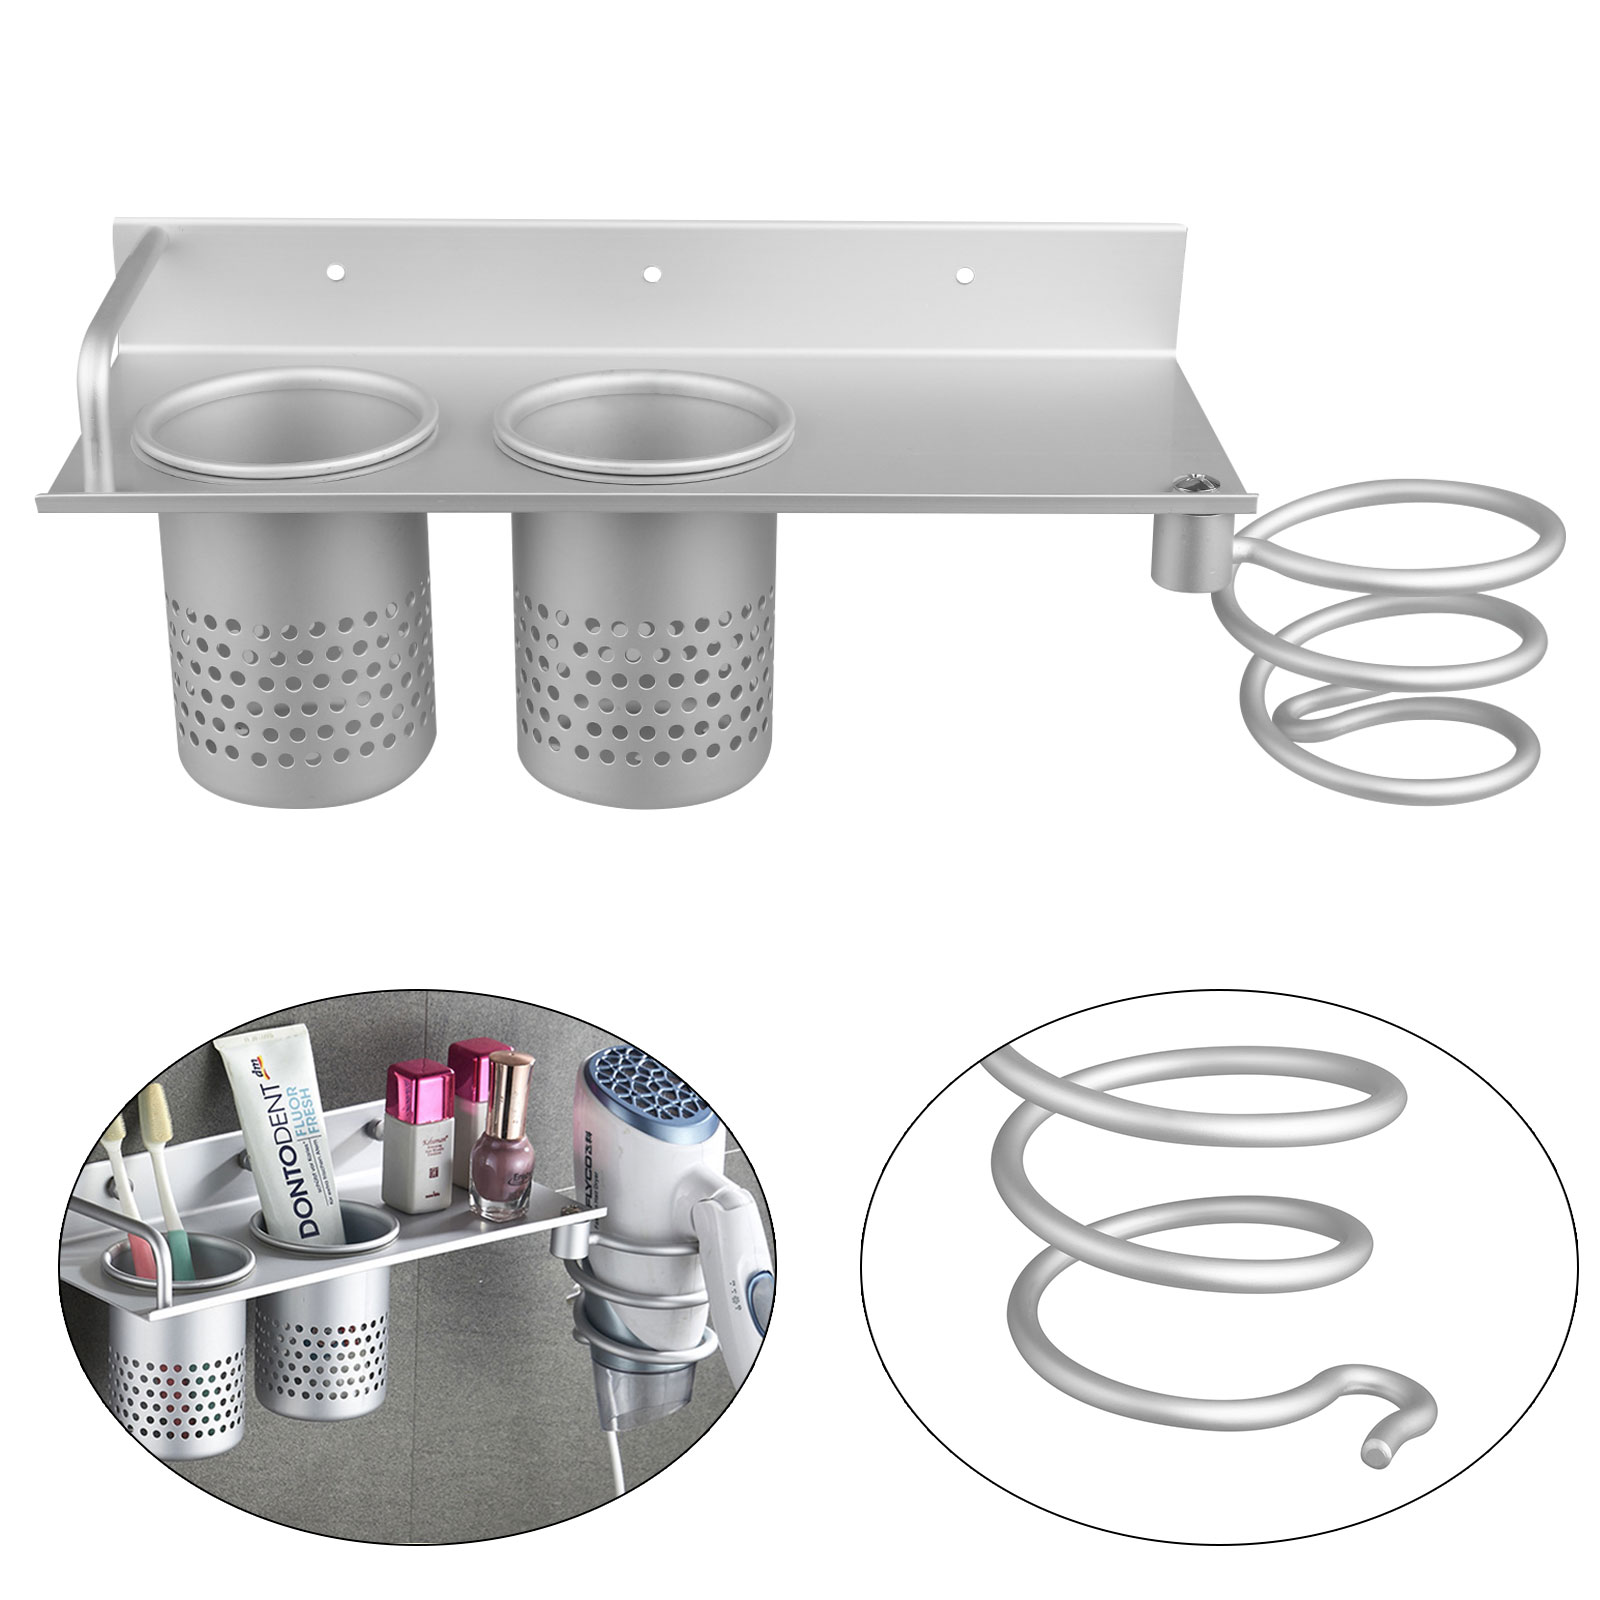 TSV Hair Dryer Stand Collection Storage Hanging Rack Organizer Bathroom Hanger Wall Mount Aluminum Set with 2 Cups